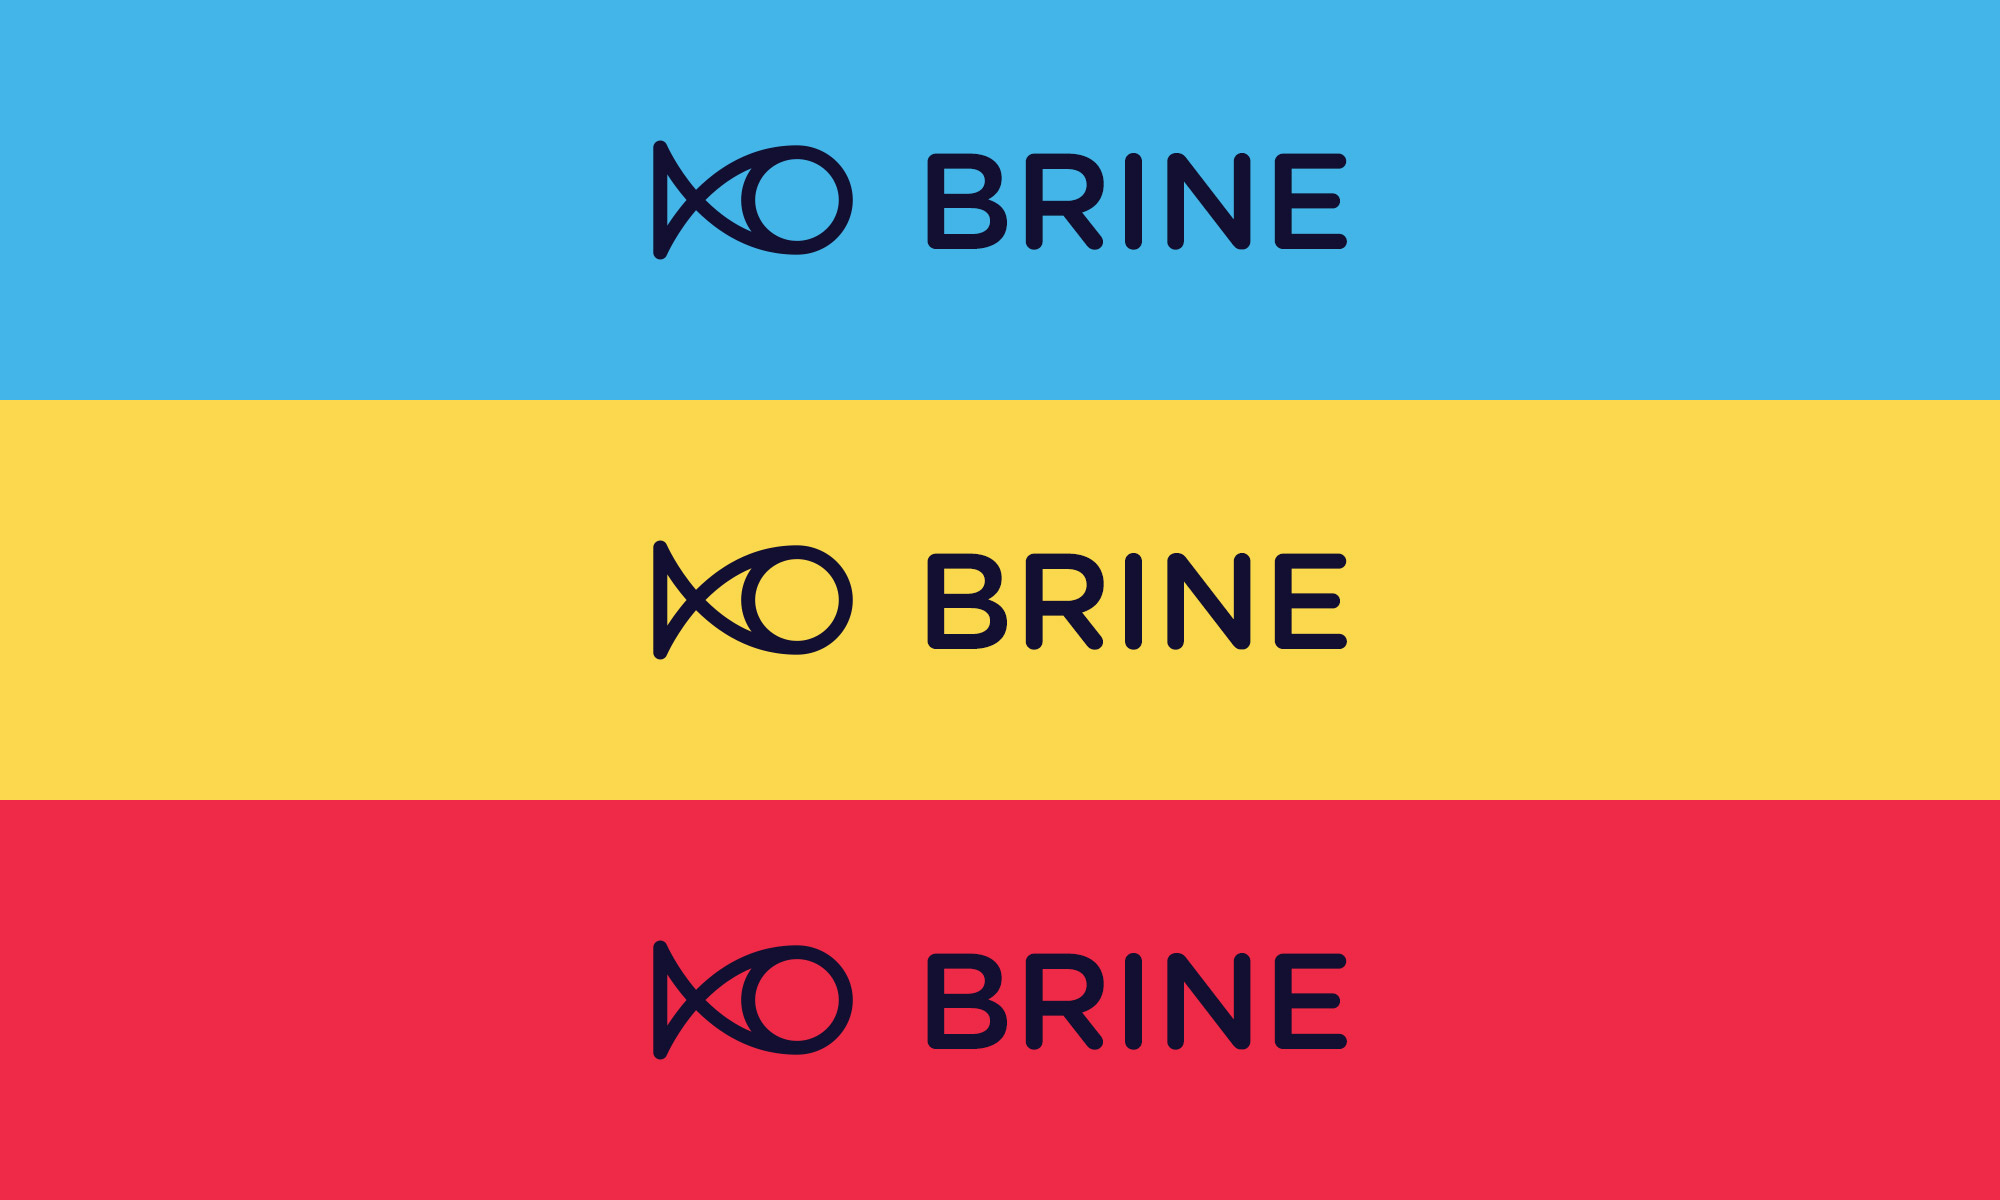 The Brine logo on a different colour backgrounds.